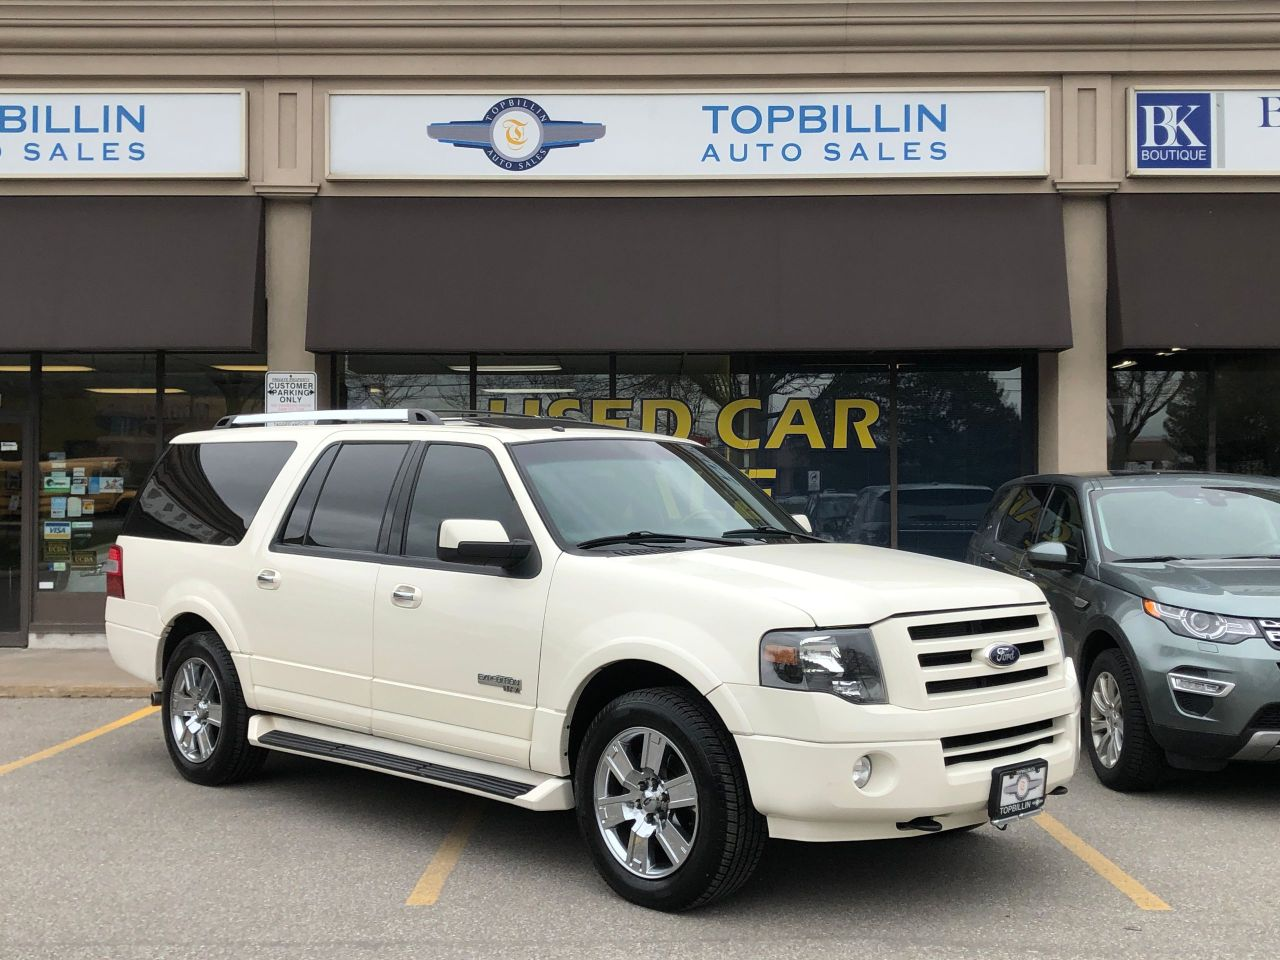 2007 Ford Expedition Limited, Navi, DVD, Backup Cam